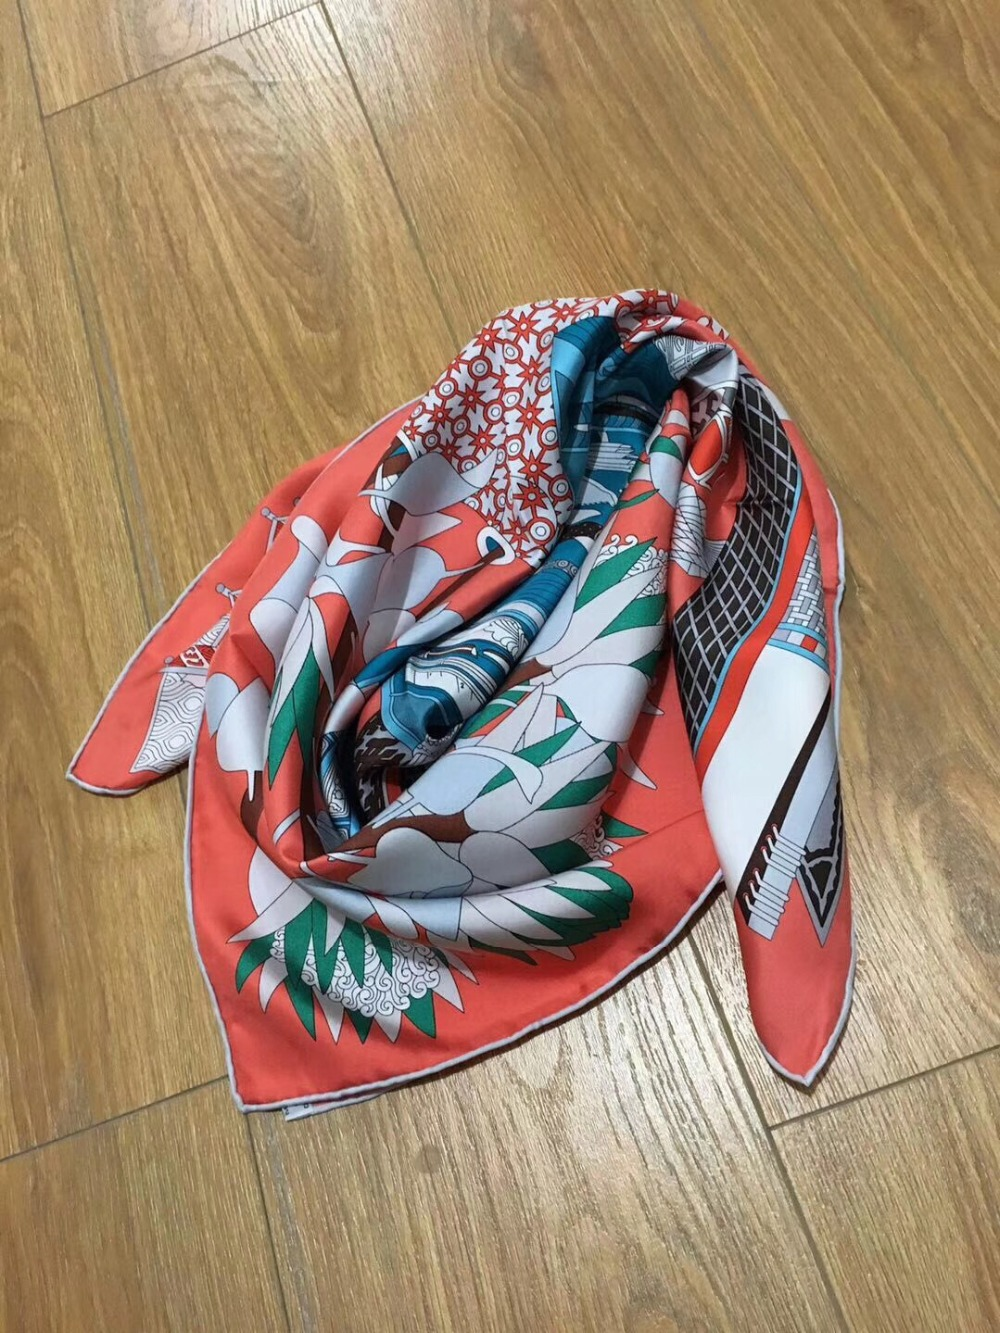 2019 New Arrival Fashion Elegant Brand Colorful 100% Silk Scarf 90*90 Cm Square Shawl Twill Wrap For Women  Free Shipping